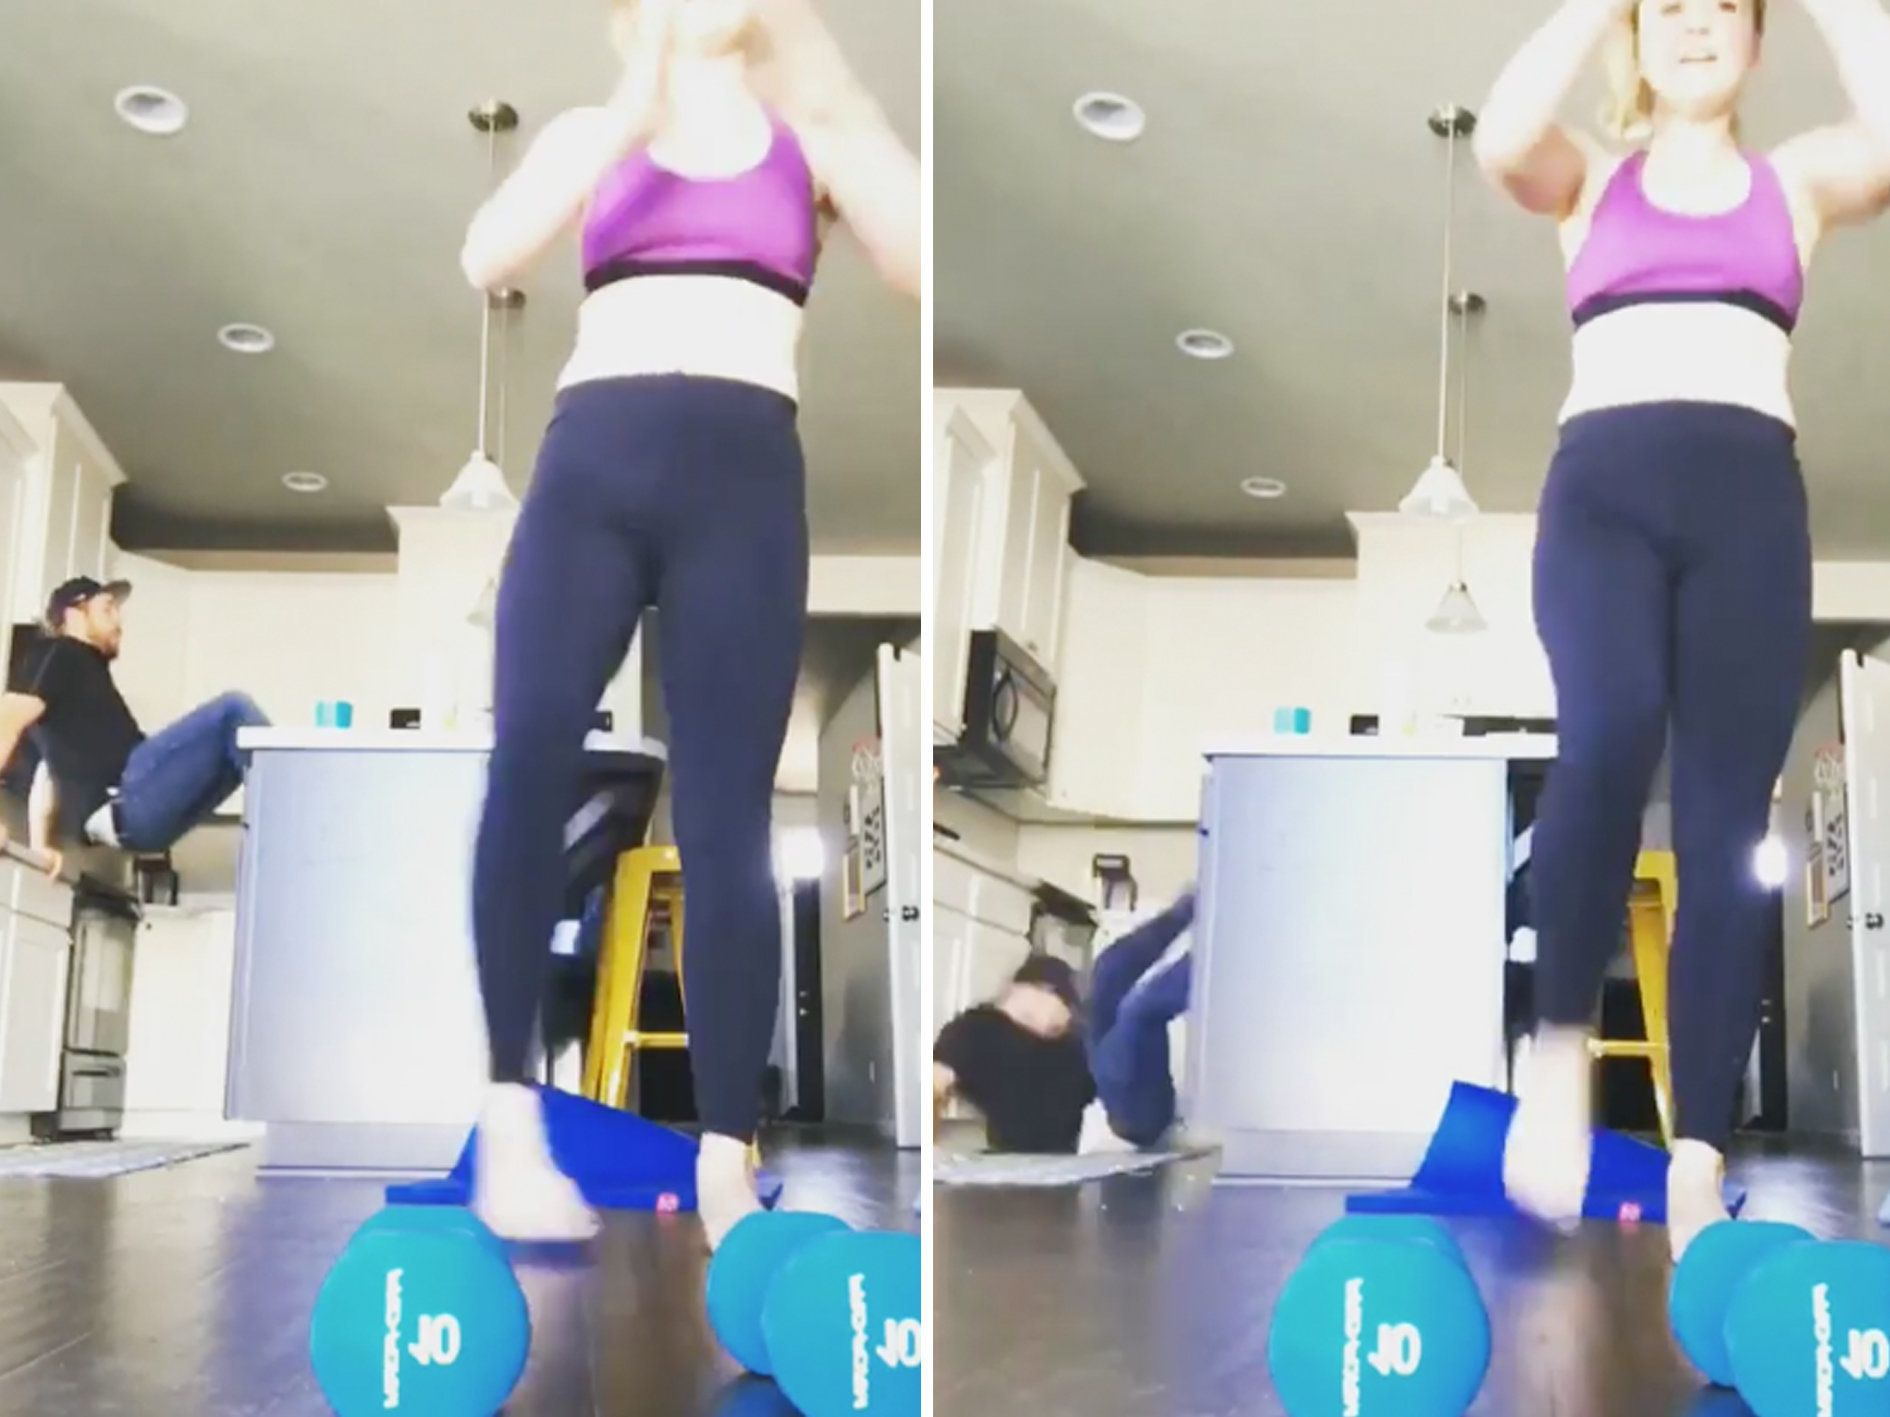 Guy Attempts To Photobomb Wife's Workout Video, Screws Up Big